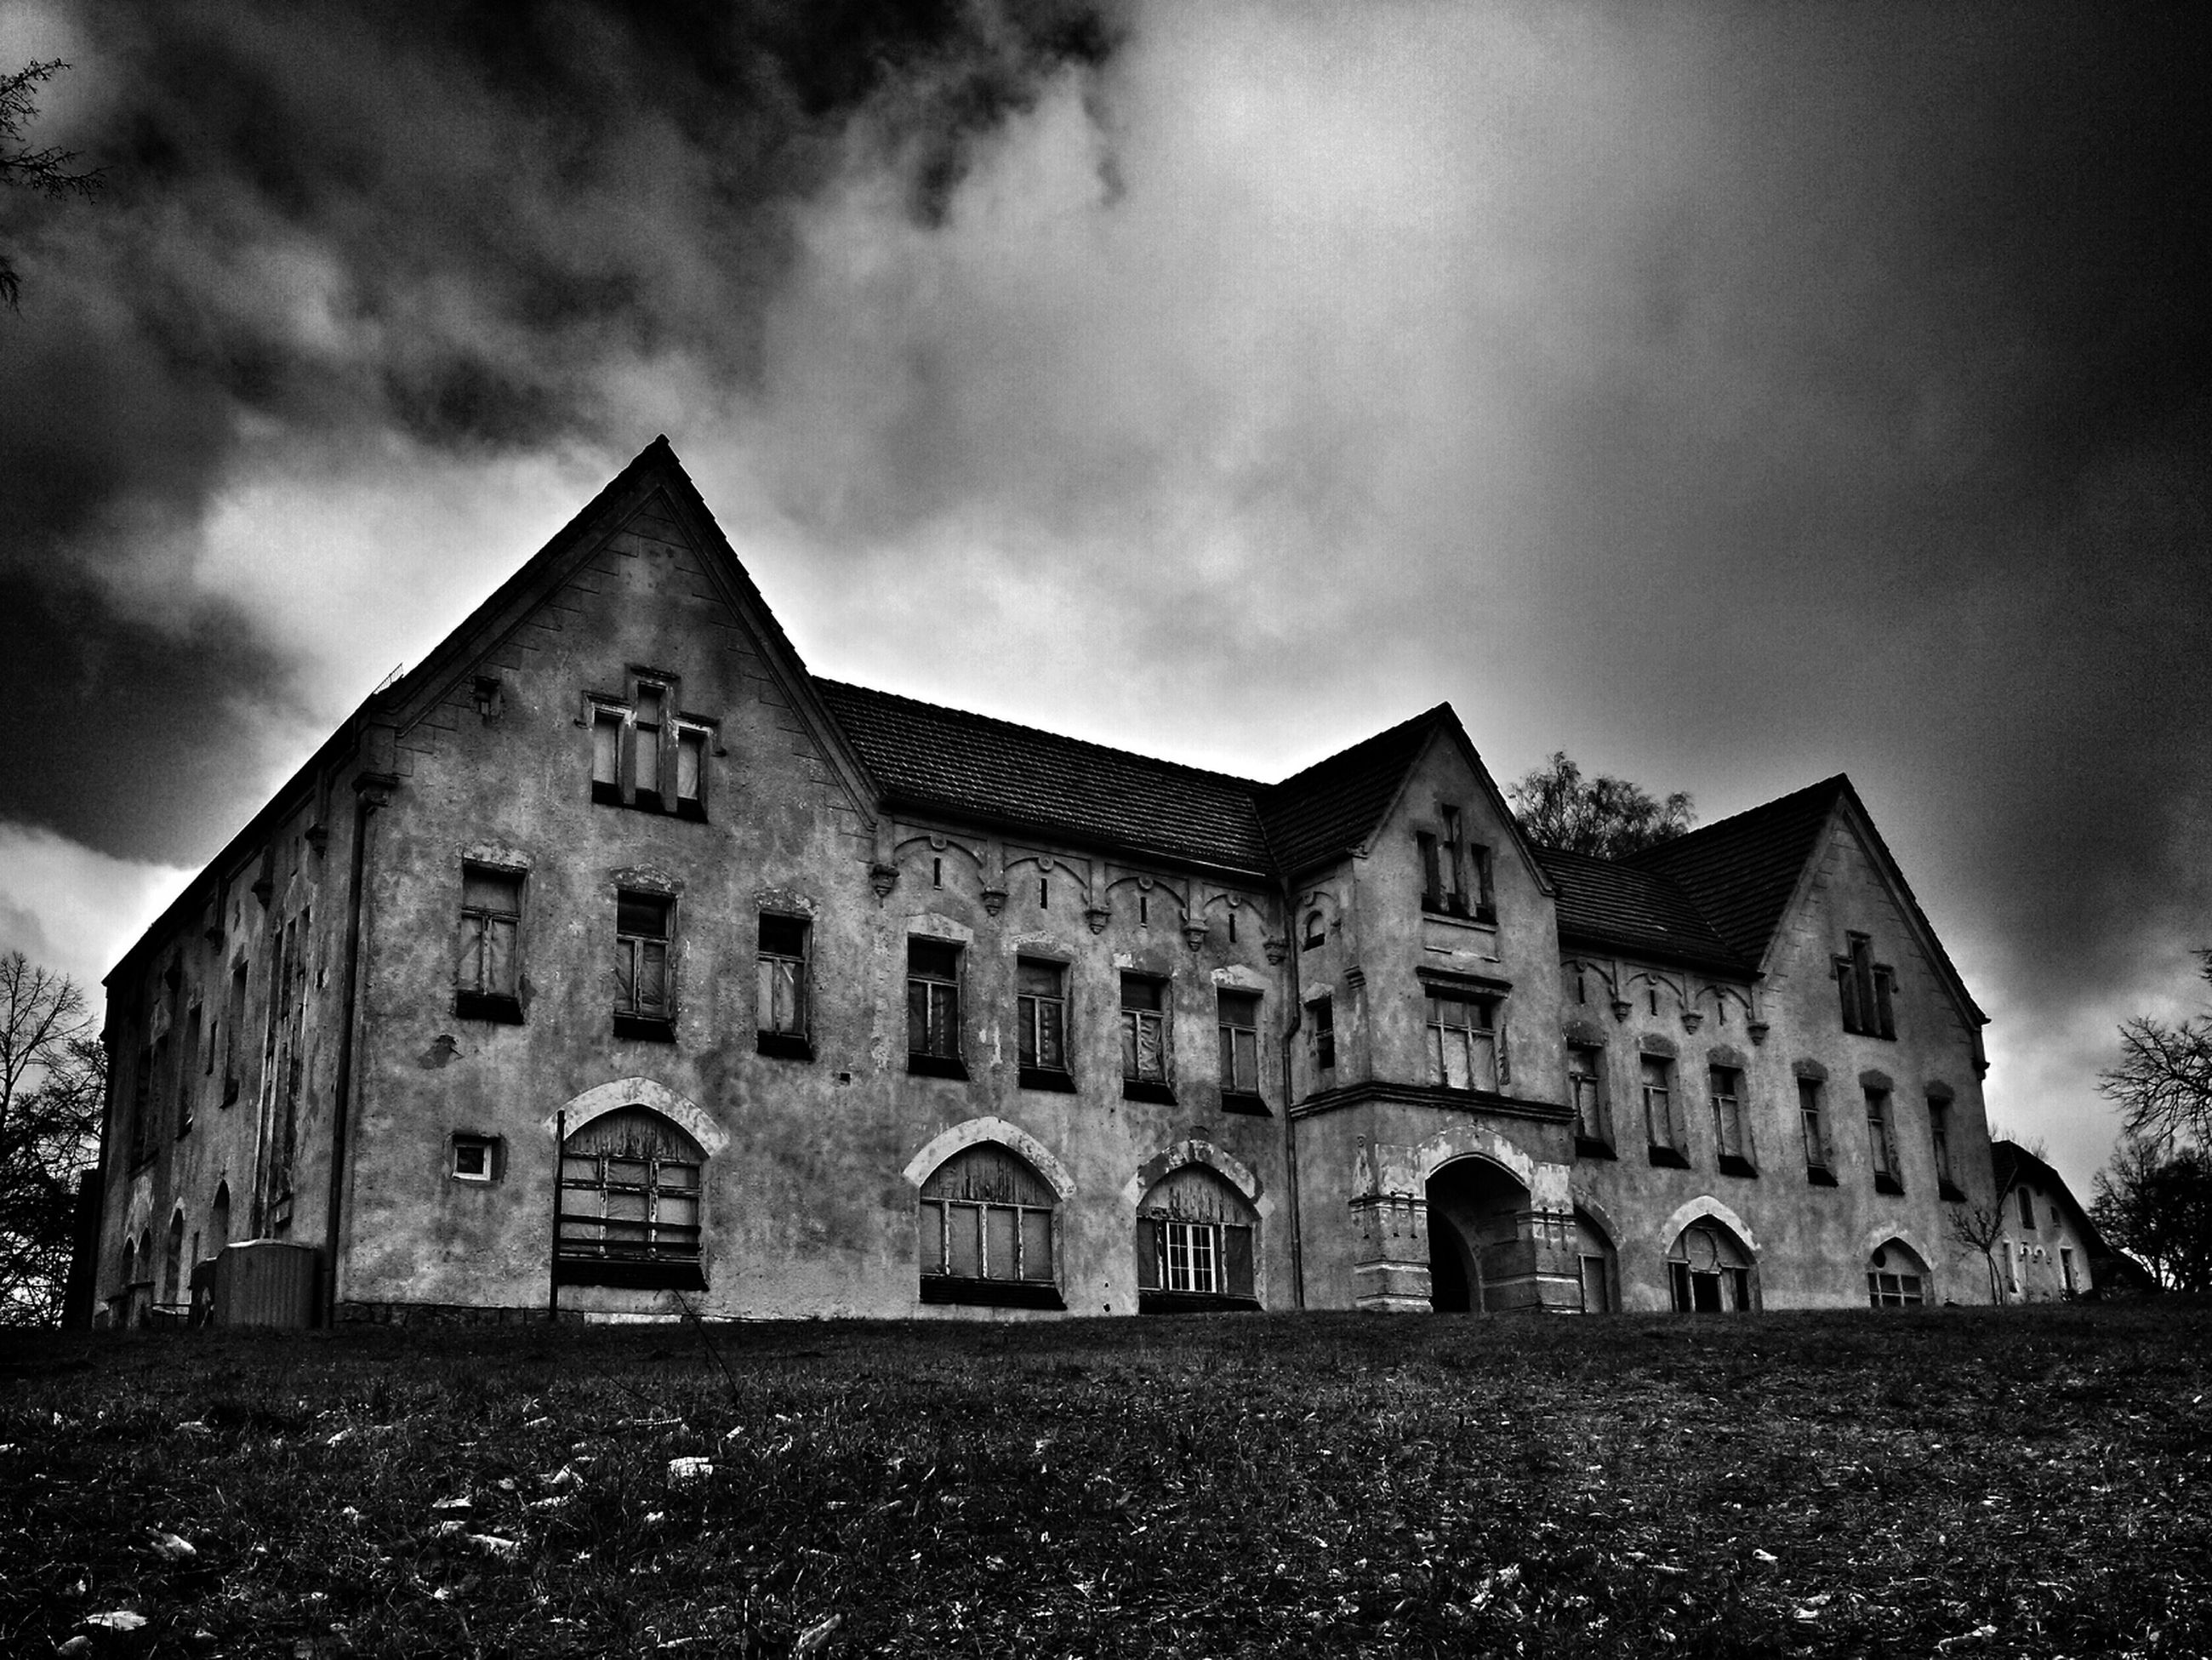 architecture, built structure, building exterior, sky, cloud - sky, cloudy, window, cloud, old, low angle view, history, overcast, facade, day, outdoors, house, arch, building, no people, exterior